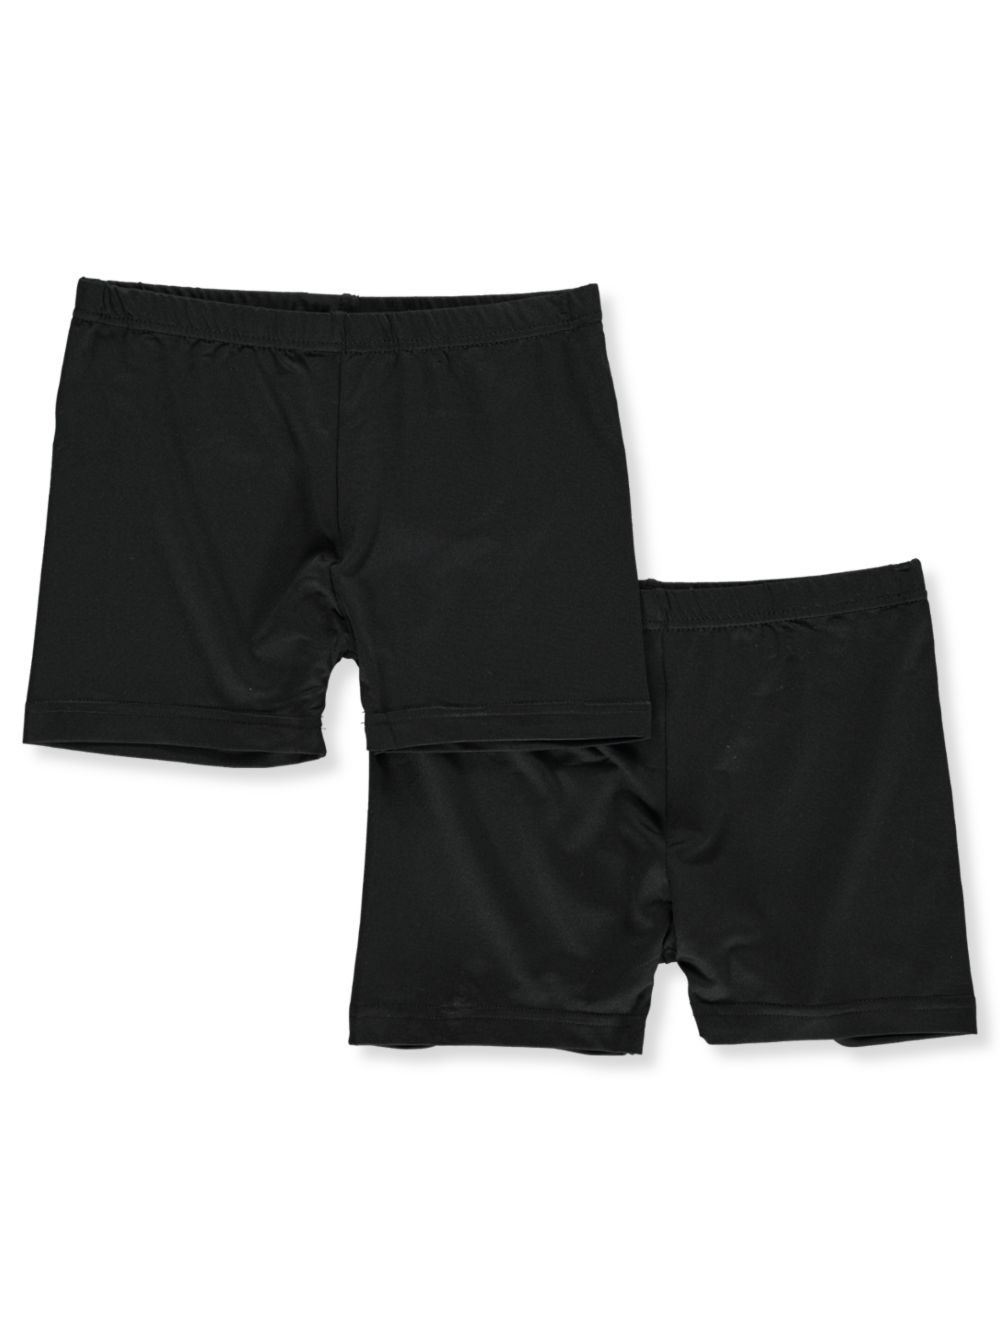 Underwear 2-Pack Play Shorts